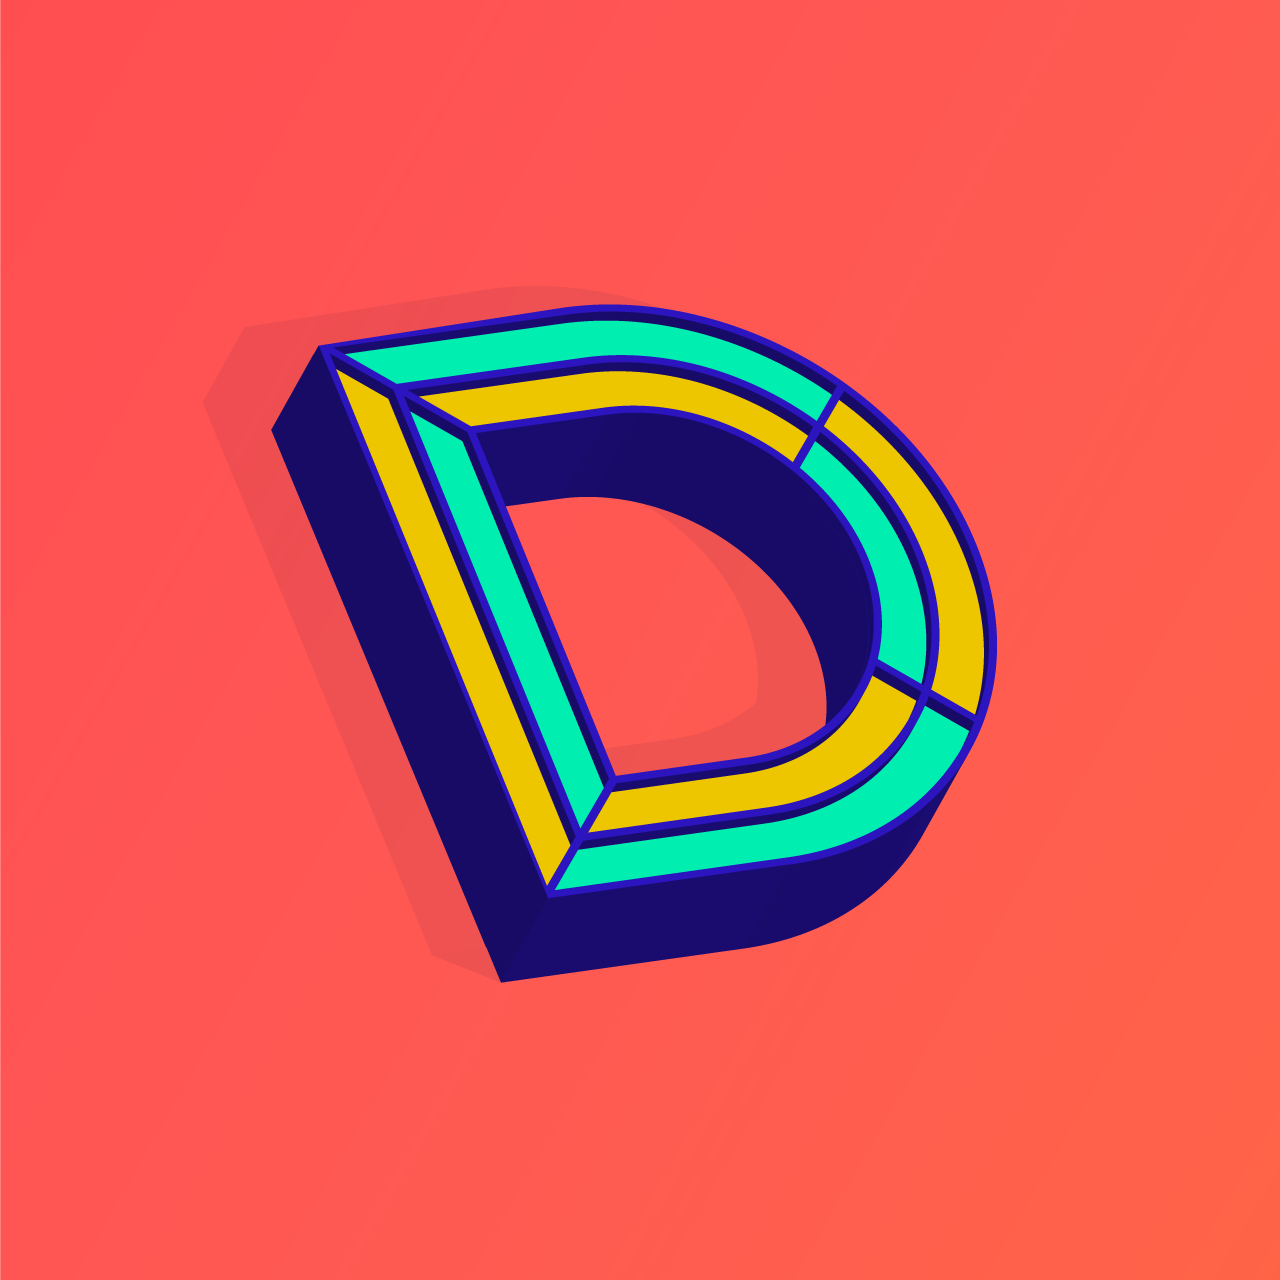 My D submission for 36 Days of Type